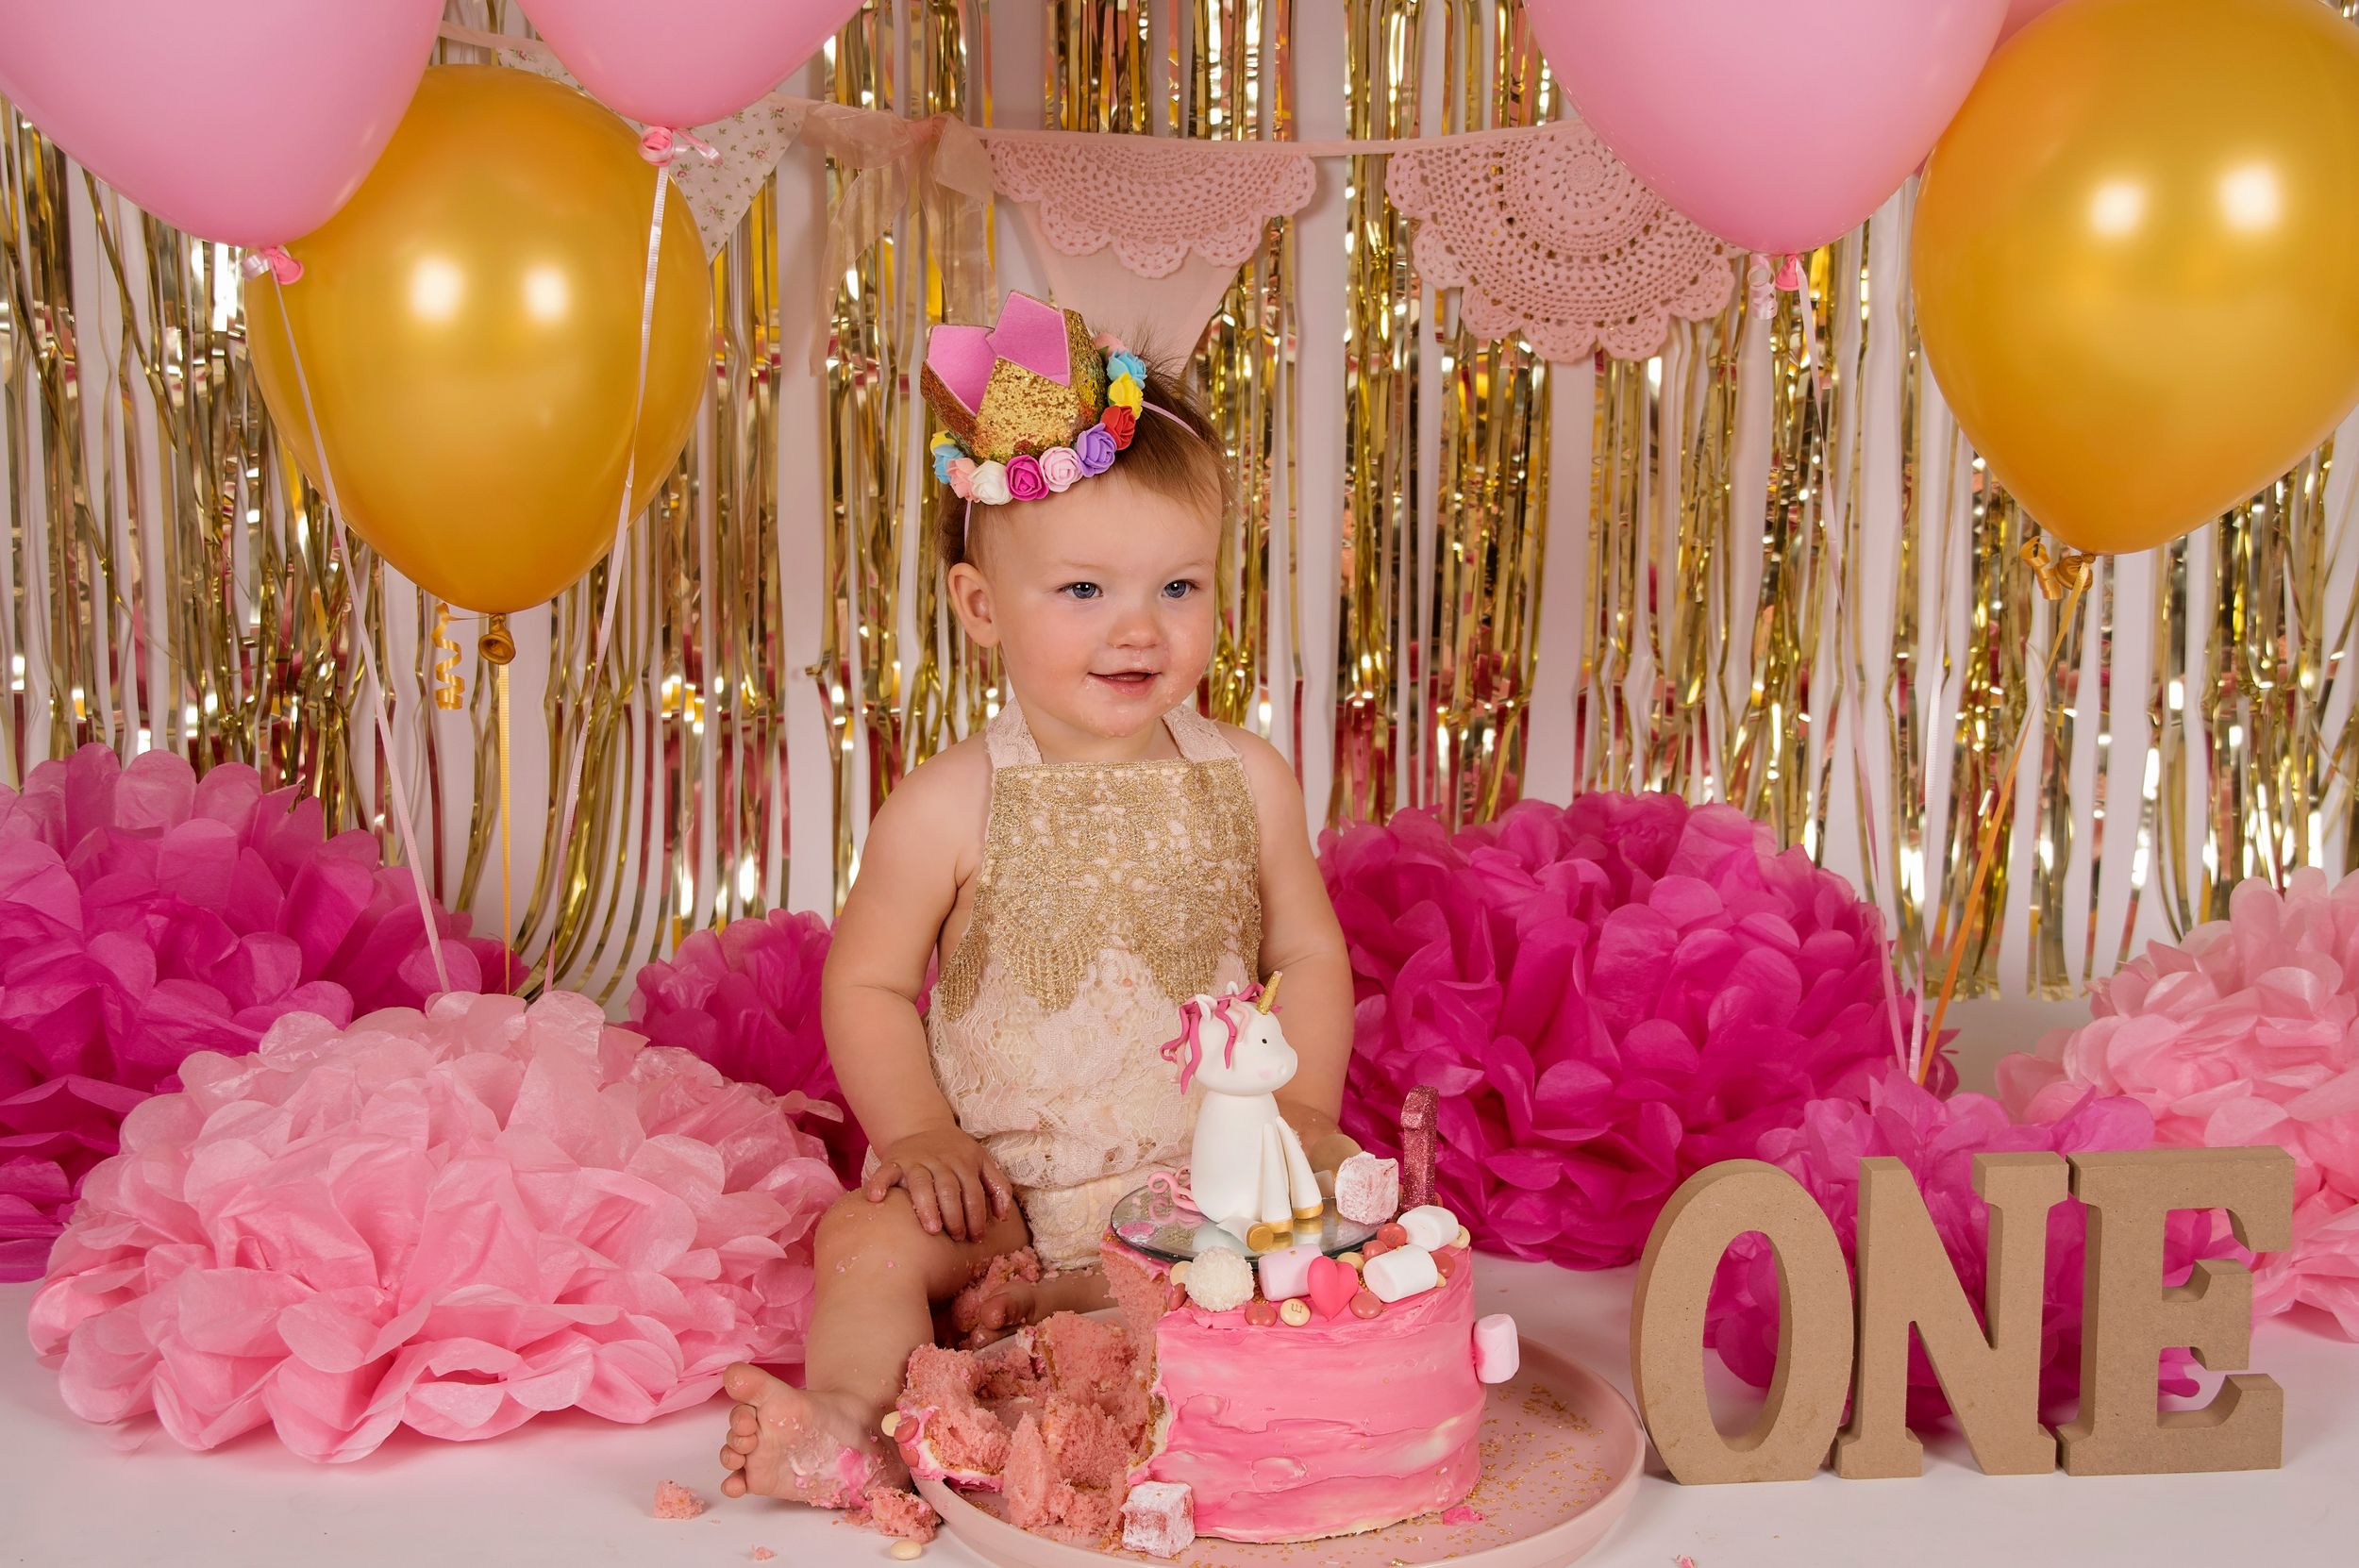 baby girl surrounded by pink decorations with pink cake